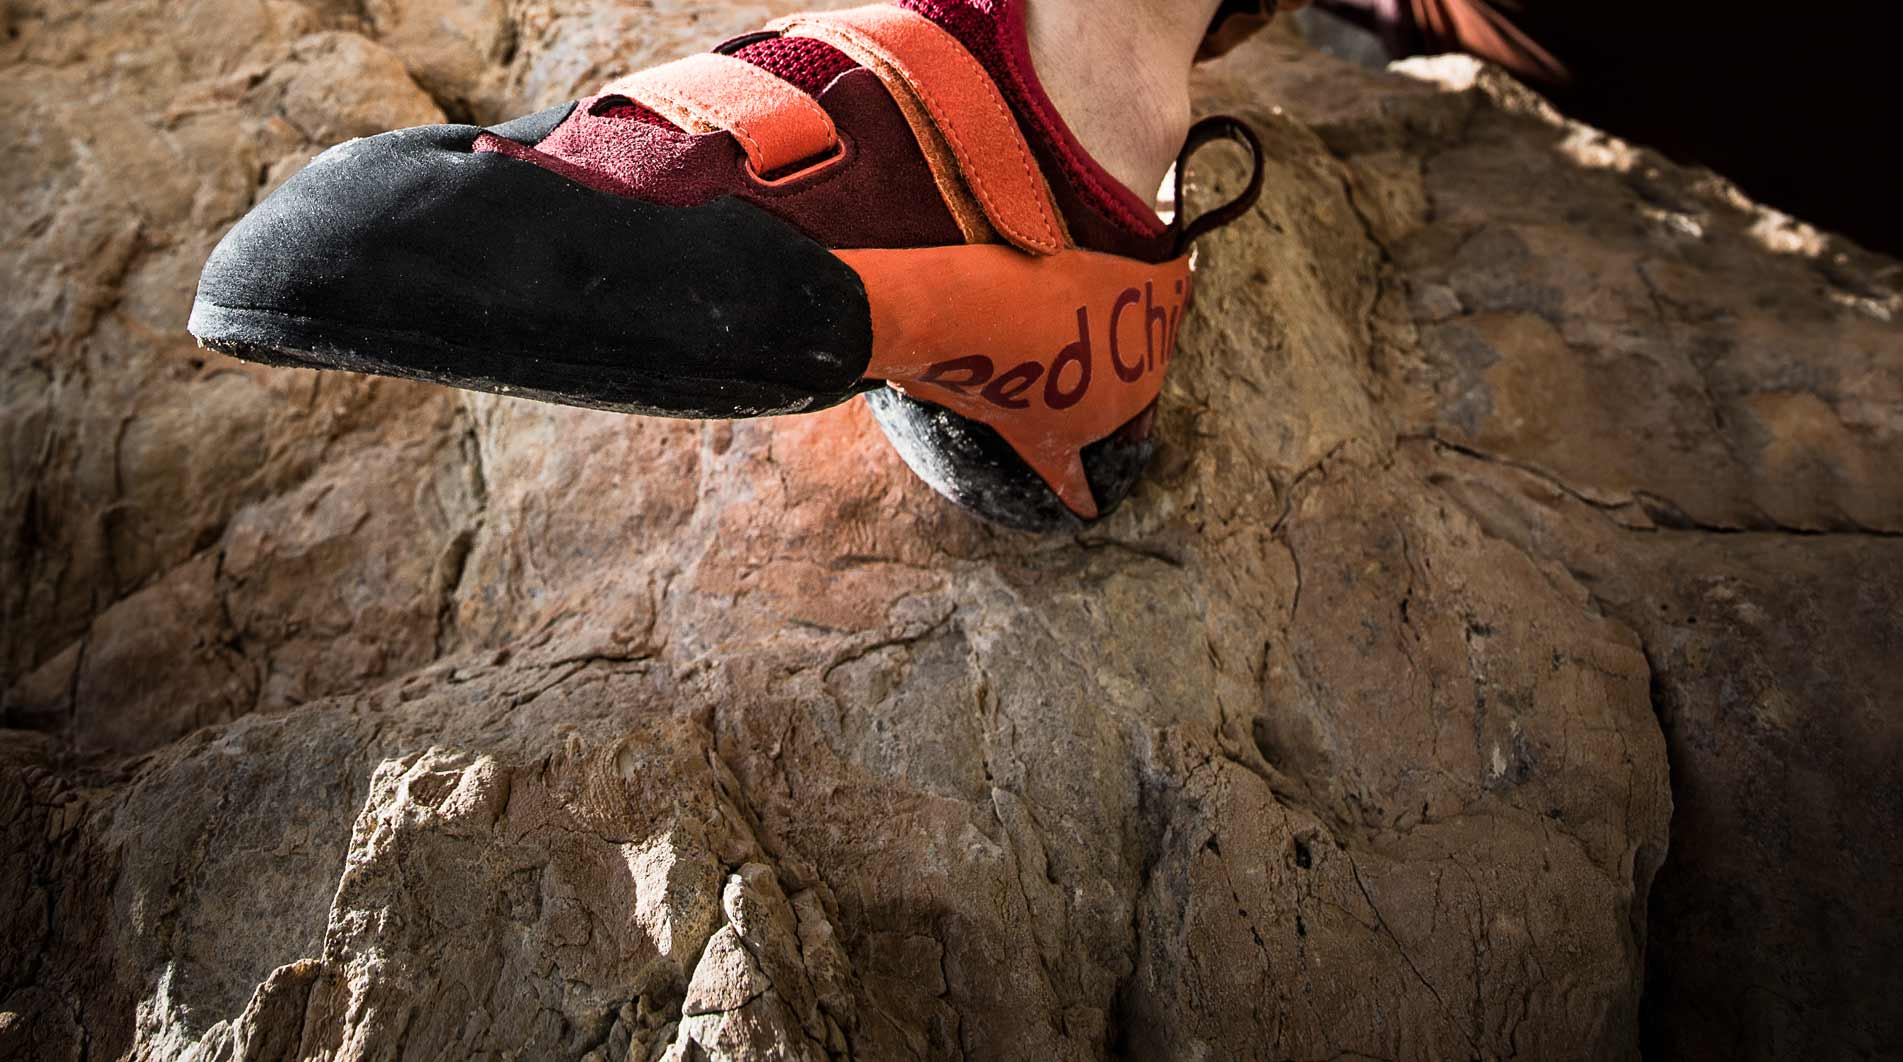 RedChili Voltage Climbing Shoe Modell 2019